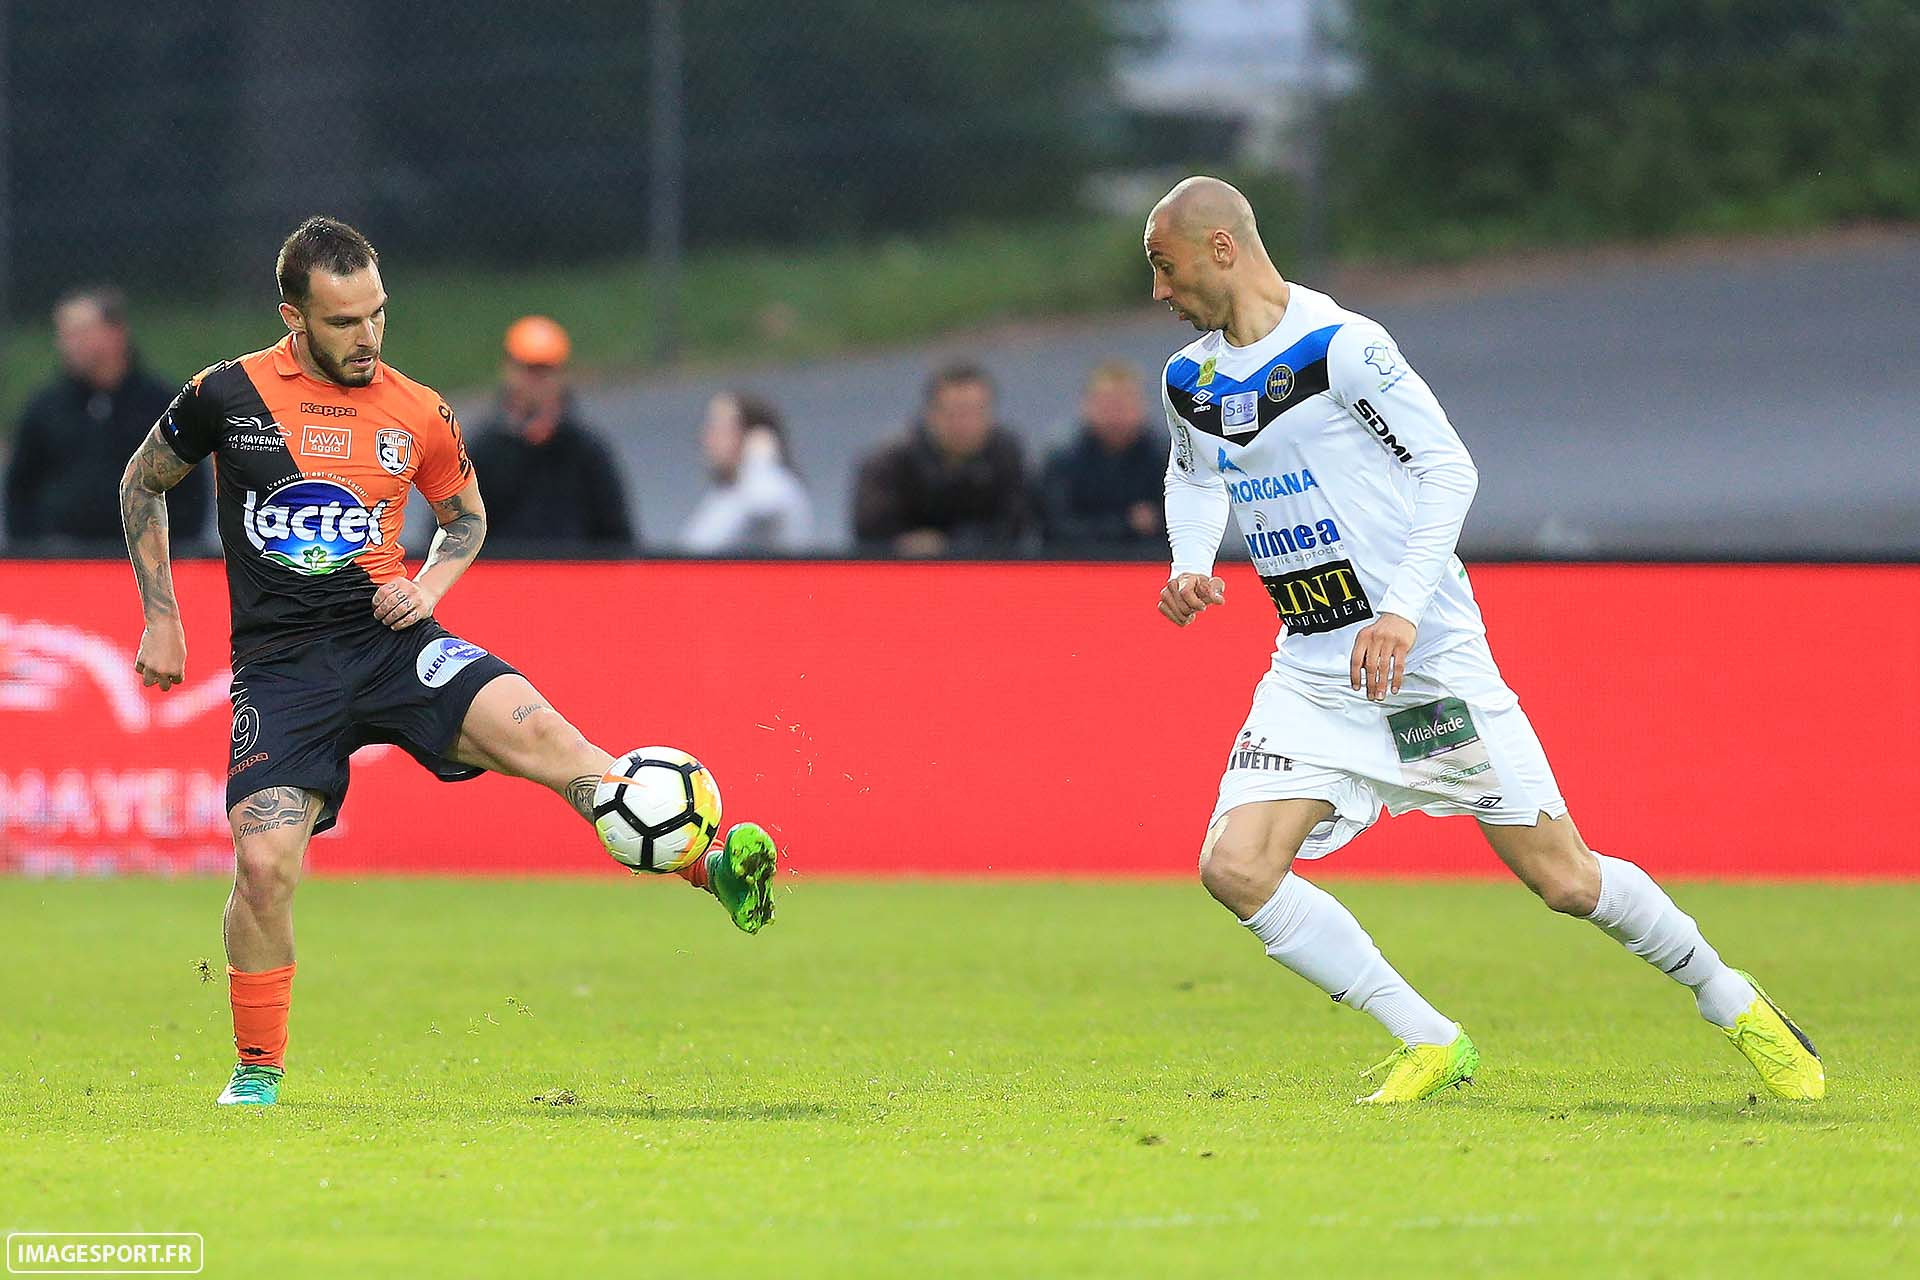 Alexy BOSETTI (Stade Lavallois) / Laurent HELOÏSE (FC Chambly Oise)